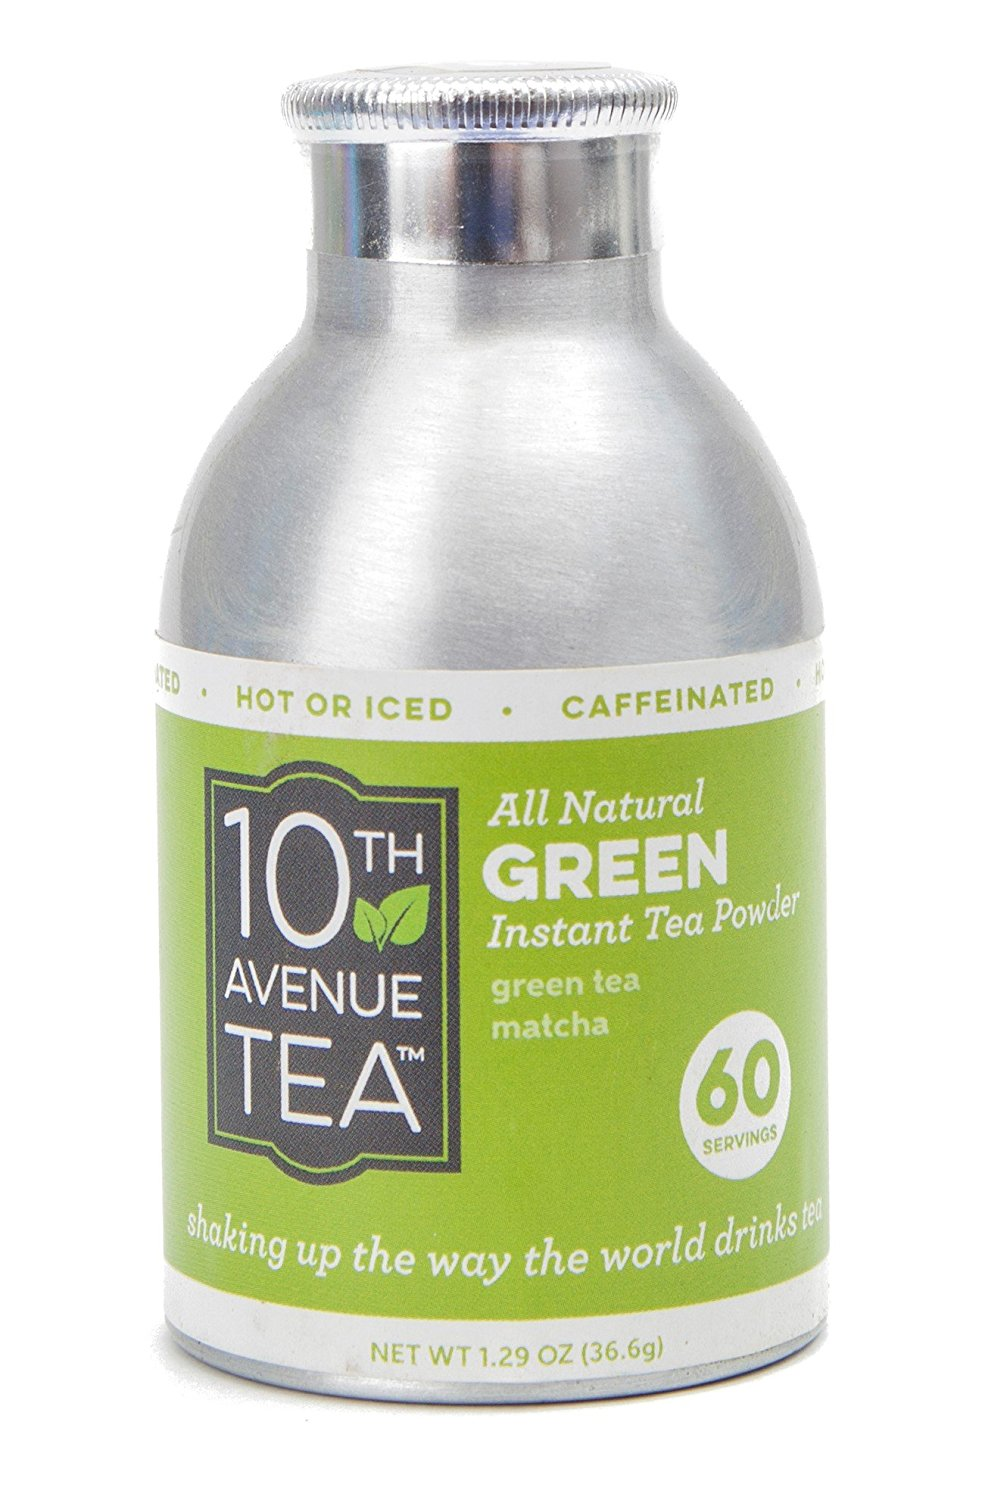 10th Avenue Tea Instant Green Matcha Tea Powder